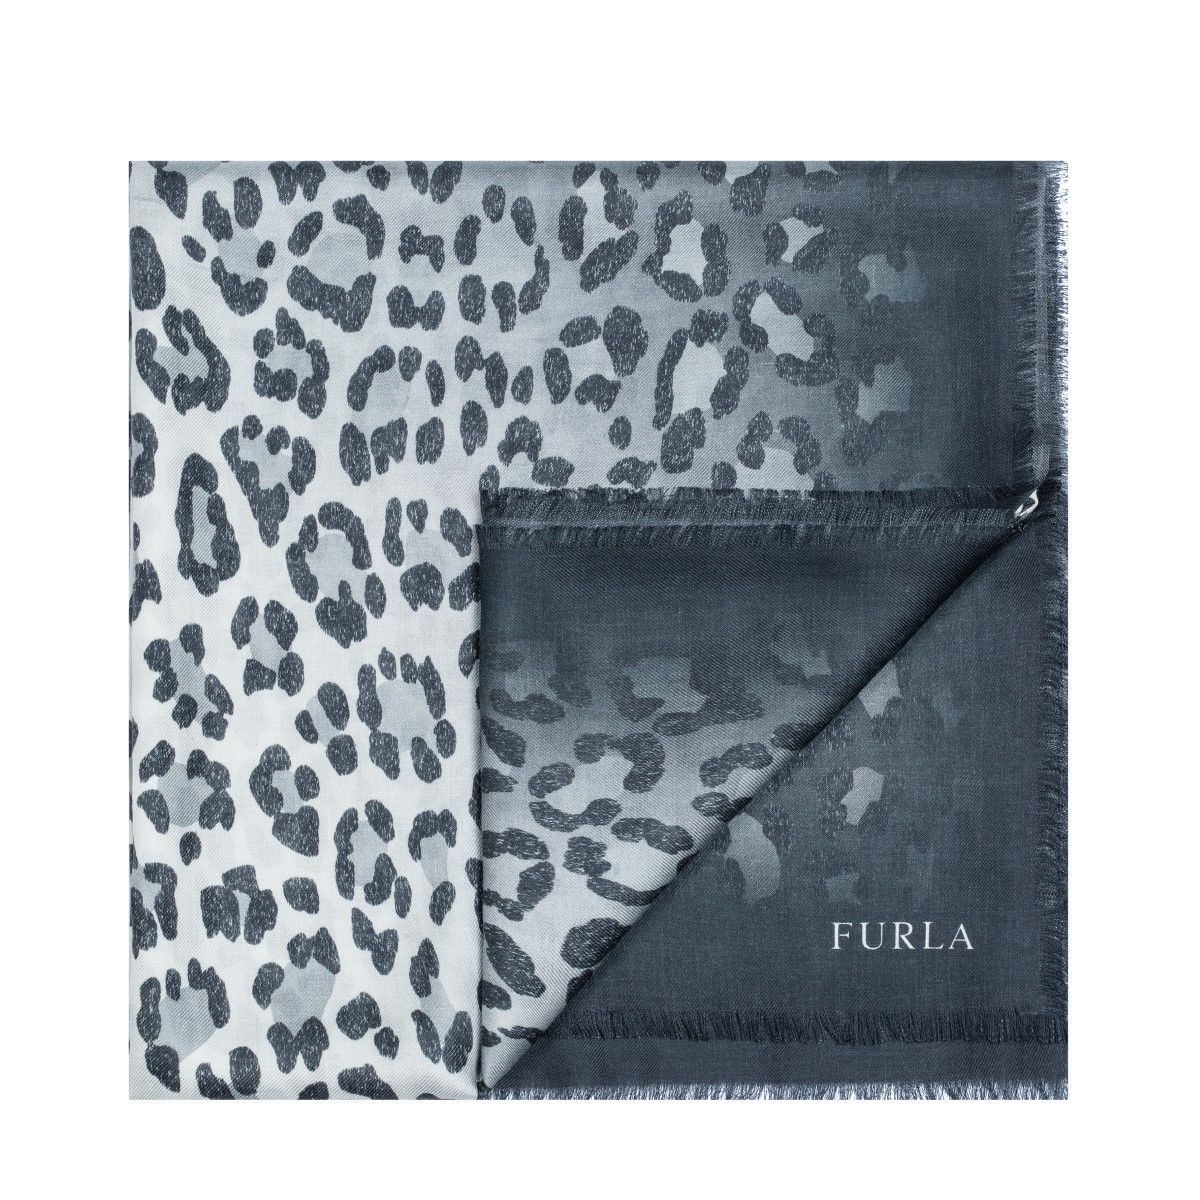 LIKE CARRE' 140x140 900900 - FURLA